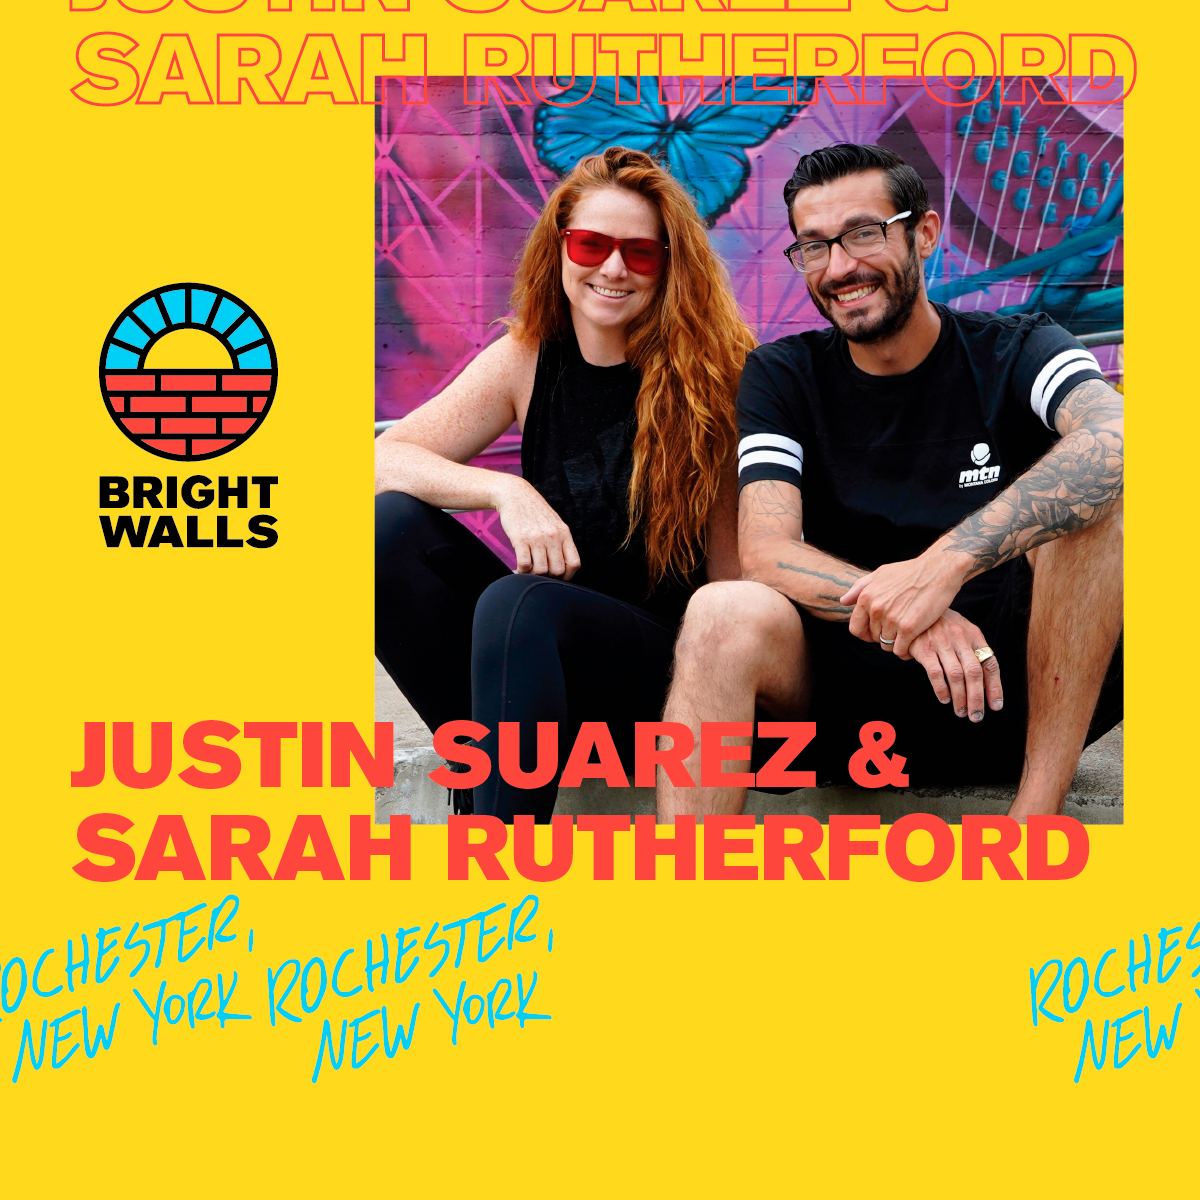 Justin Suarez &Sarah RutherfordRochester, New York 🇺🇸 - Justin Suarez is an artist who brings together the rural and the urban. Celebrating wildlife, he paints flora and fauna flawlessly over concrete and brick.Justin Suarez brings the intensity of a raptor to his artistic endeavors, as well as his work as valued handler of birds of prey at Wild Wings Animal Sanctuary outside Rochester, NY, he is able to capture the majesty of the natural world through his explosive graphics and remarkable technique.With over 18 years experience, he has painted murals across the US, and his work has been exhibited around the world.Boston born Sarah C. Rutherford is a muralist, illustrator and activist who supports women. Trying to bring people and communities together through art, she believes that murals work their way into the fabric of people's daily lives and therefore should be accessible to all and never be owned by someone entirely.Mural Partner: Consumers Energy